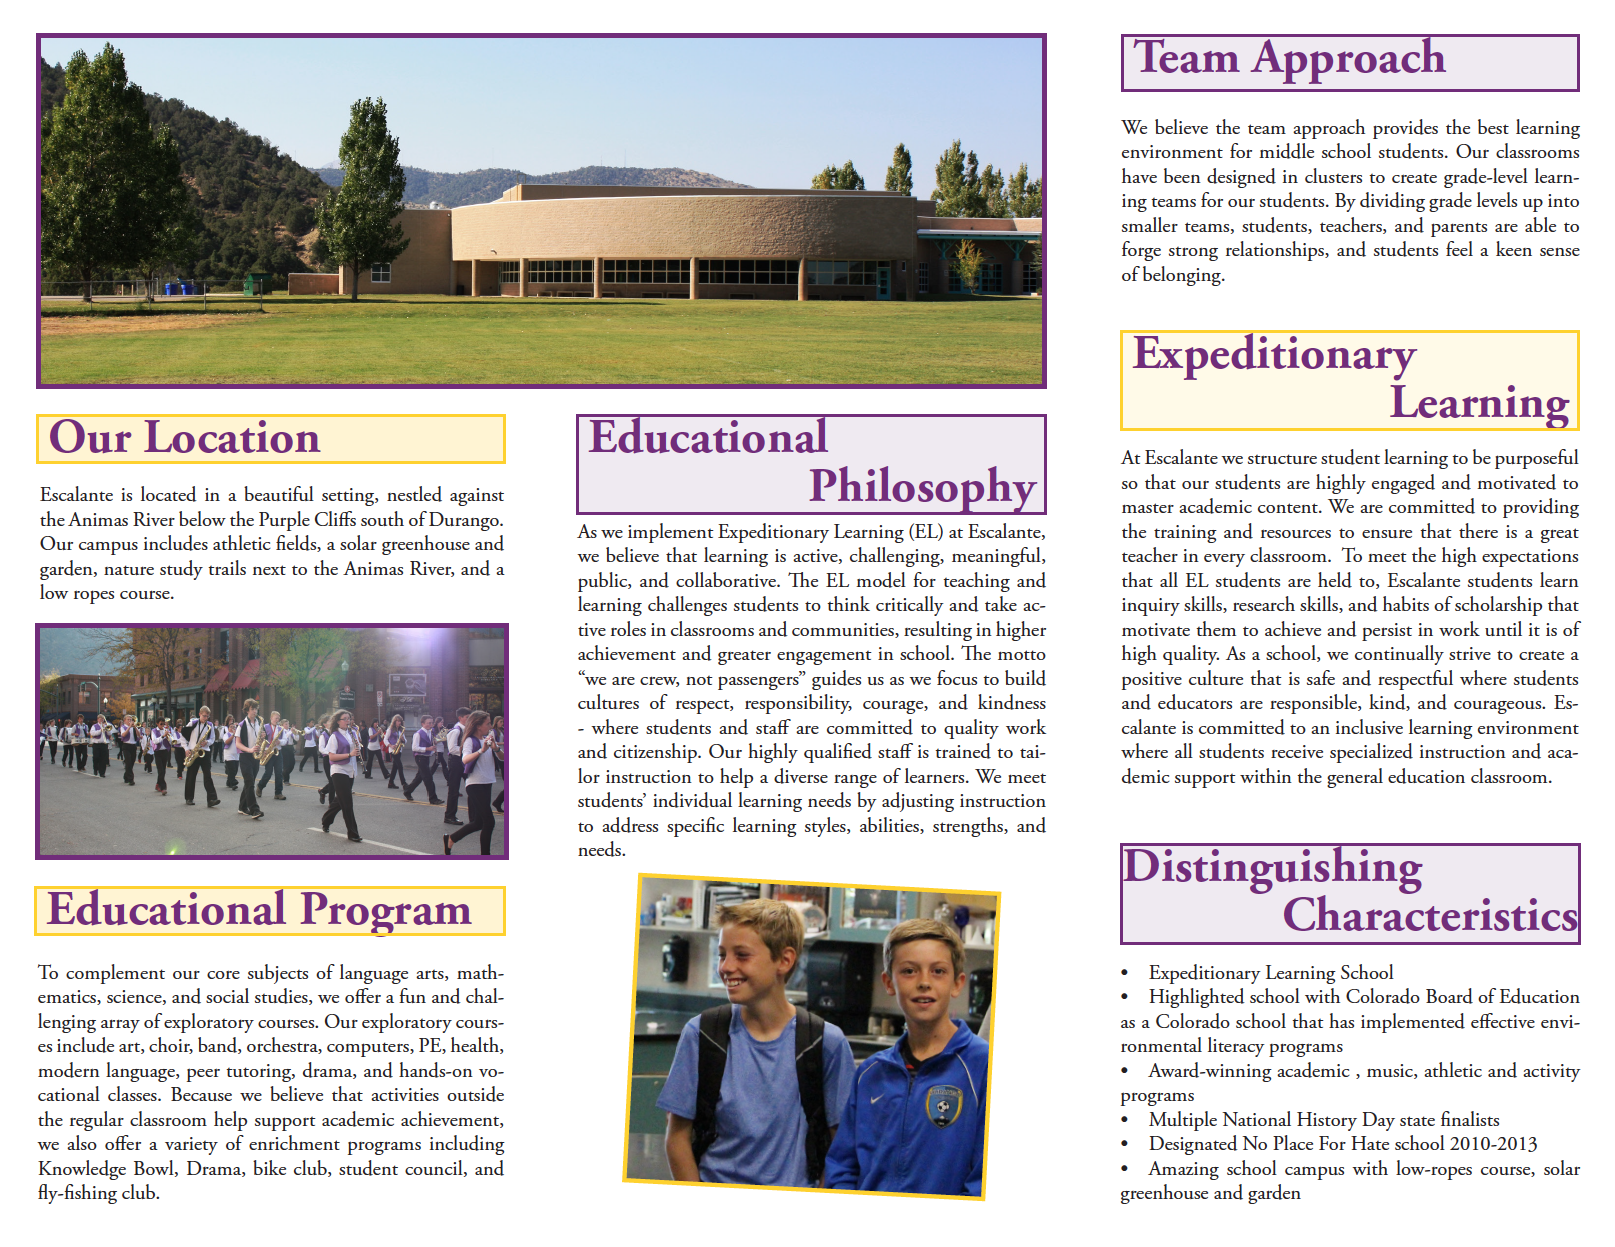 Inside of the Escalante brochure